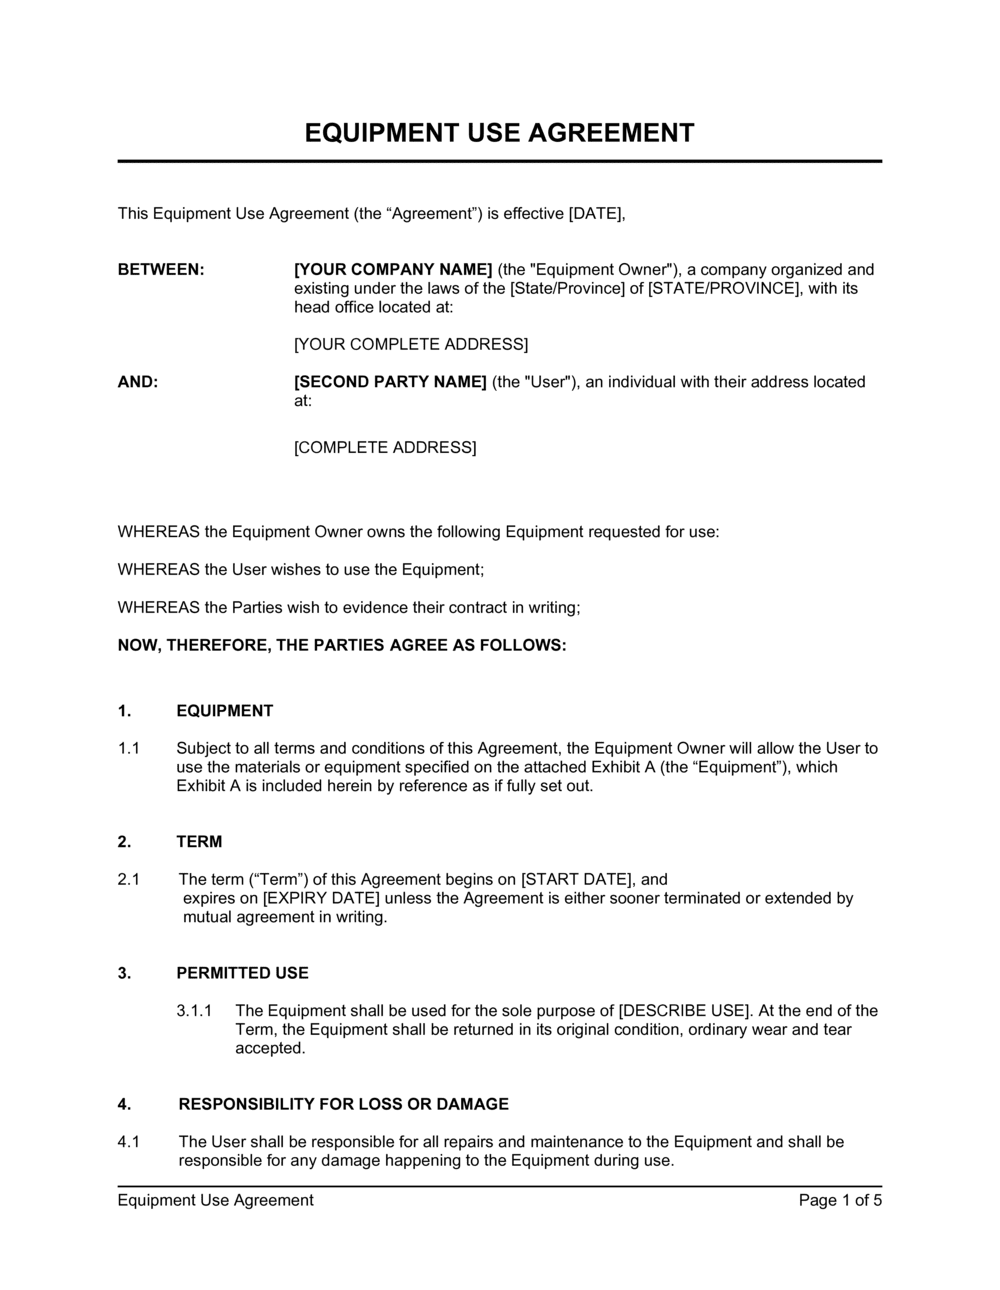 Business-in-a-Box's Equipment Use Agreement Template